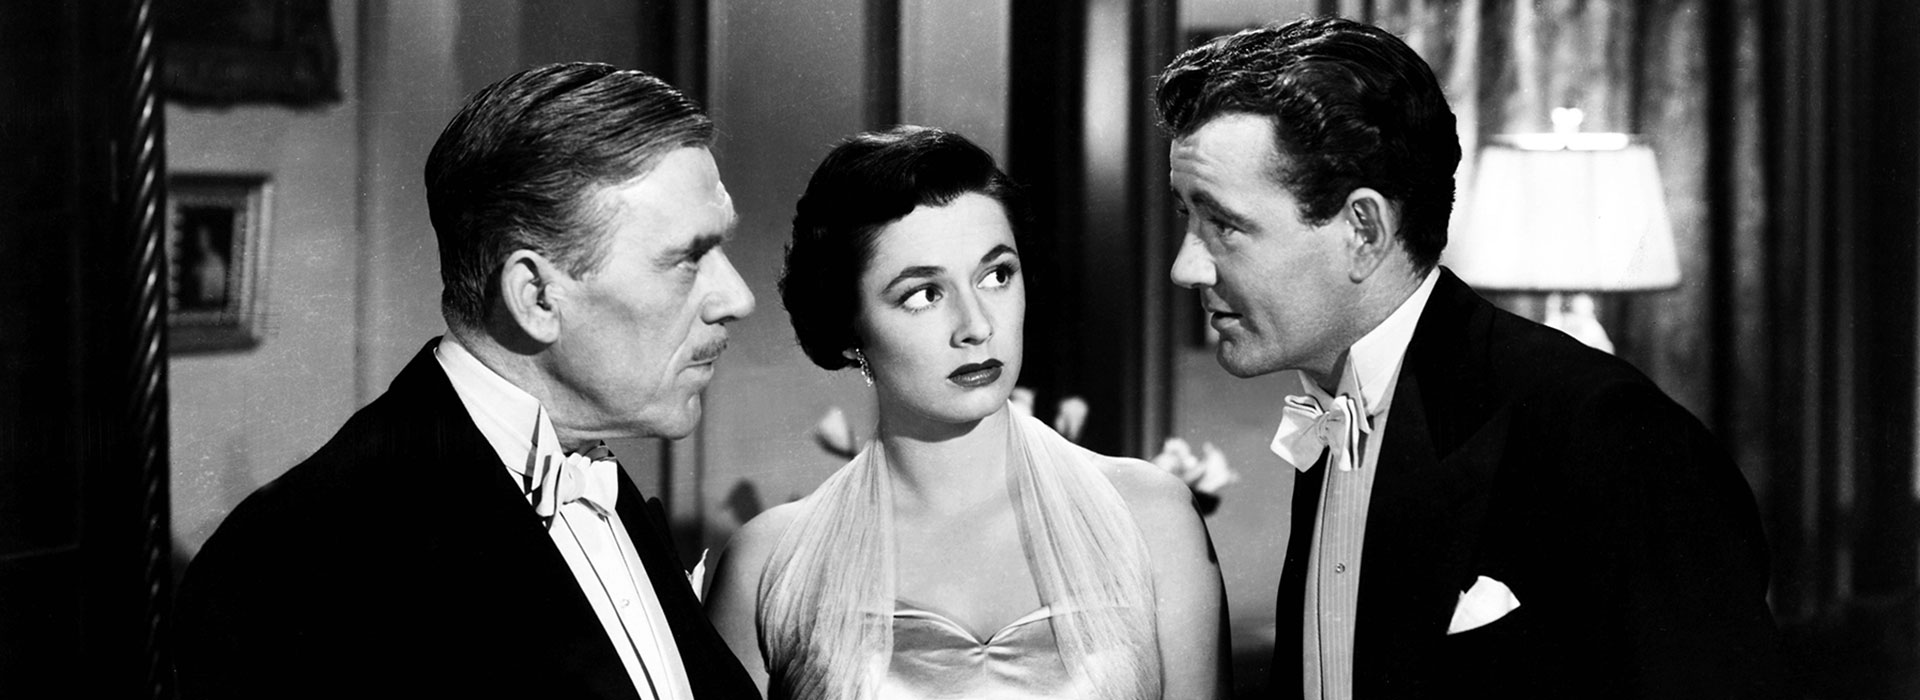 Bruno Anthony (Robert Walker, re.) irritiert Senator Morton (Leo G. Carroll, li.) und seine Tochter Anne (Ruth Roman, Mi.) mit bizarrem Small Talk.